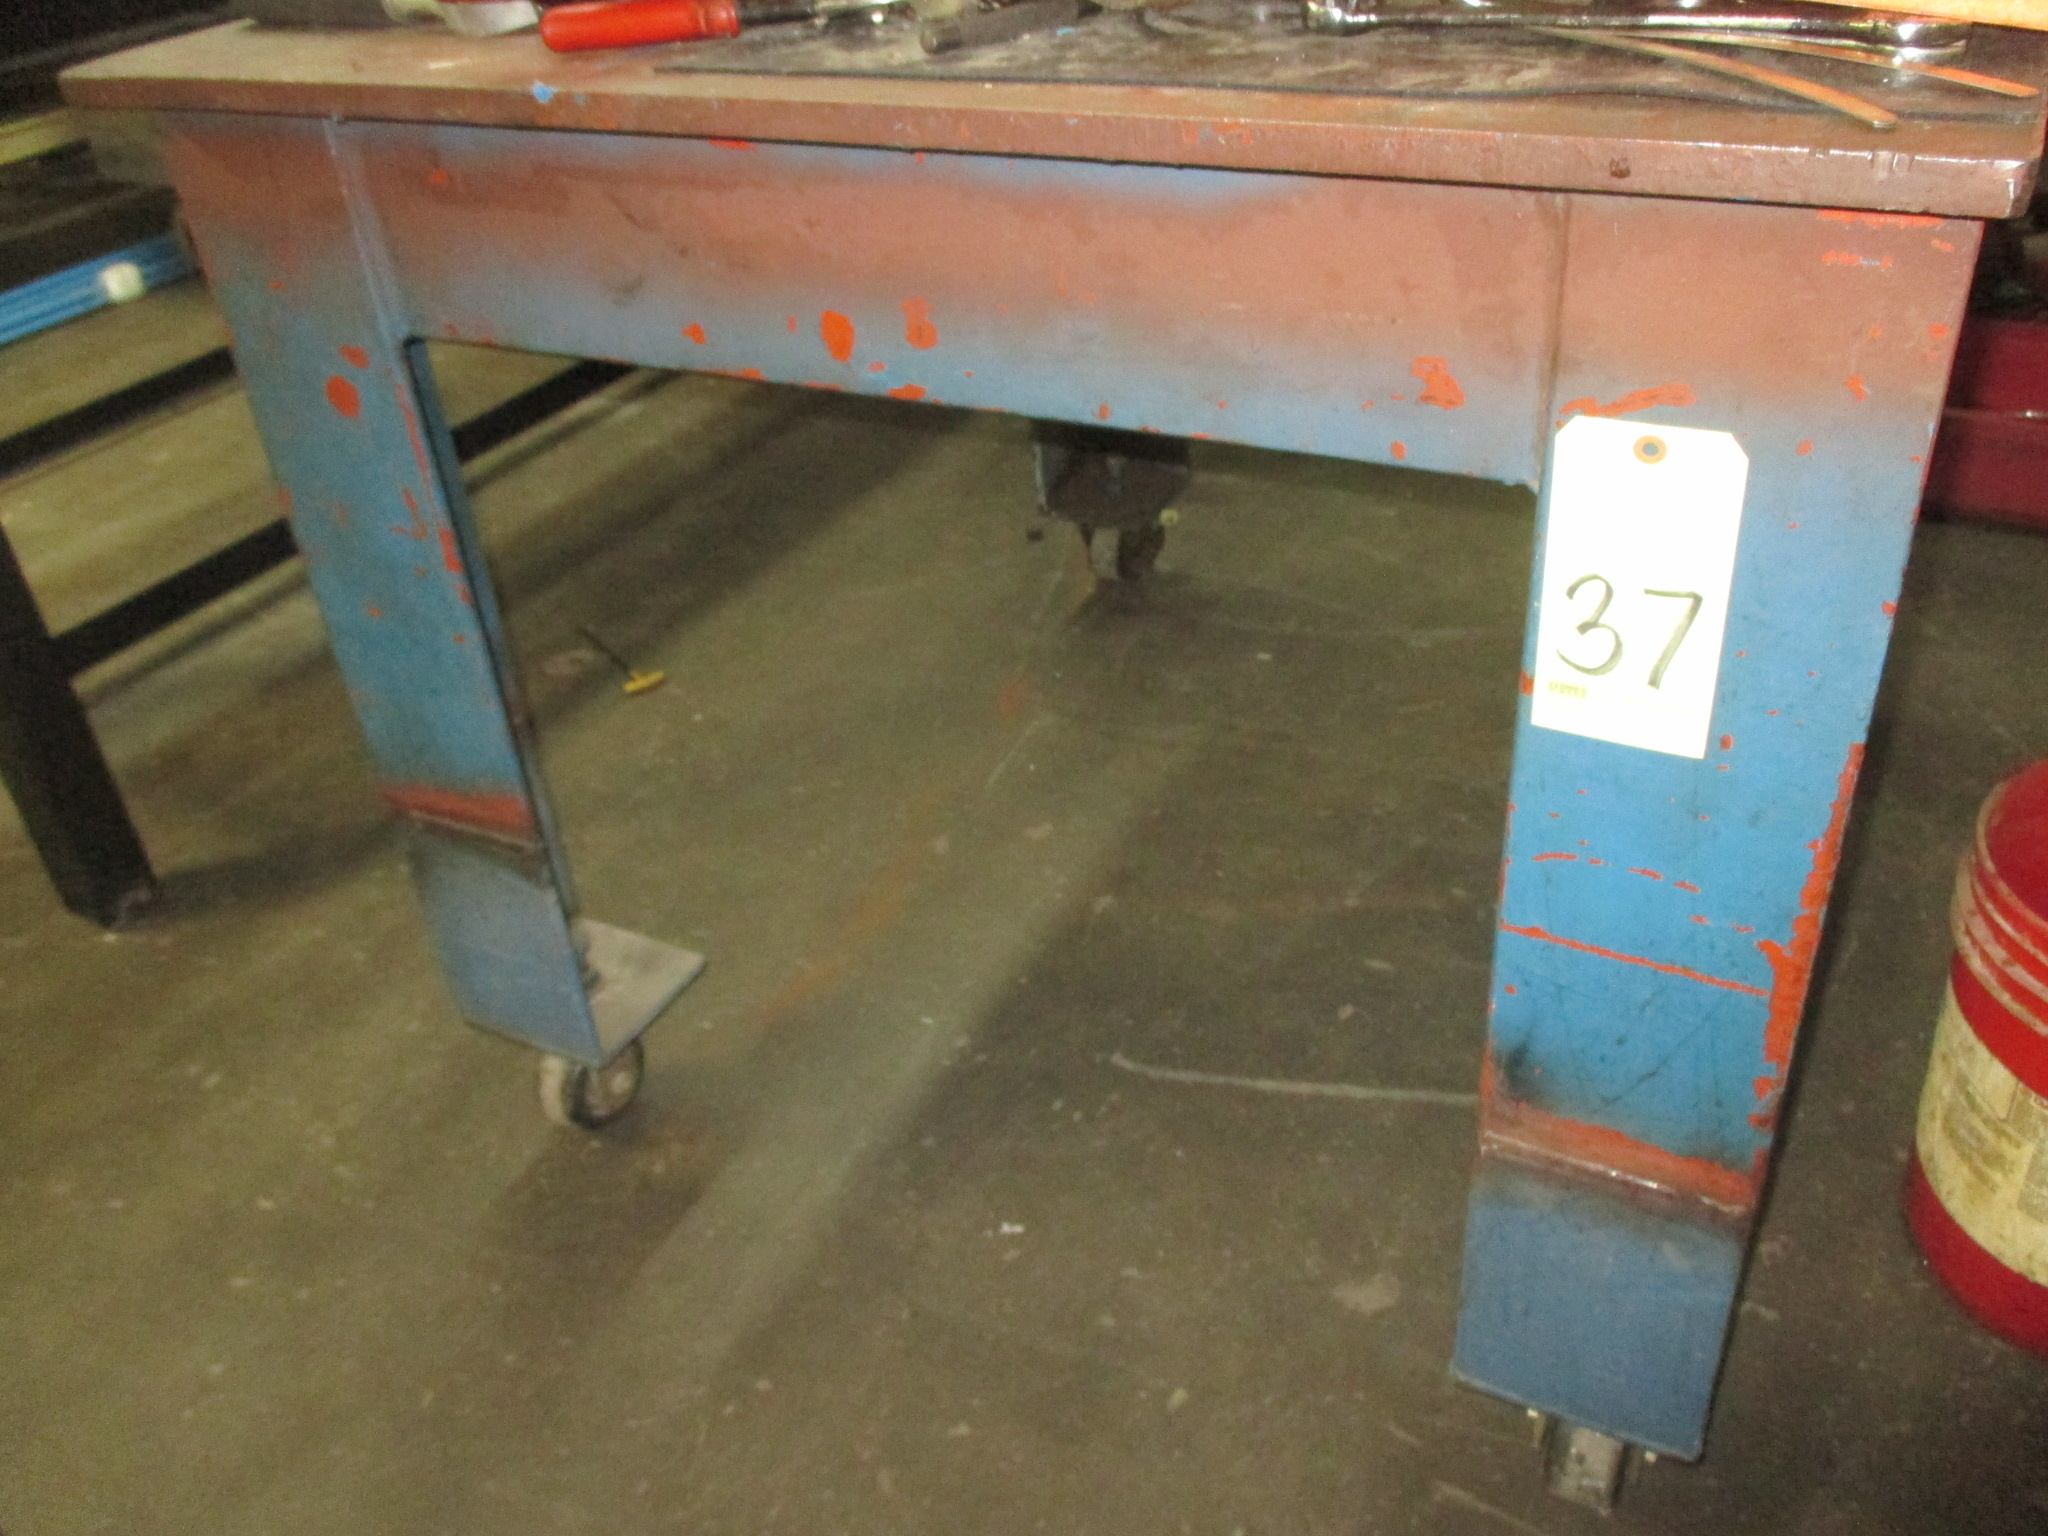 Lot 37 - ROLLER TABLE, 4-1/2' x 3-1/2', H.D., w/vice (delayed removal until 08/24/17)